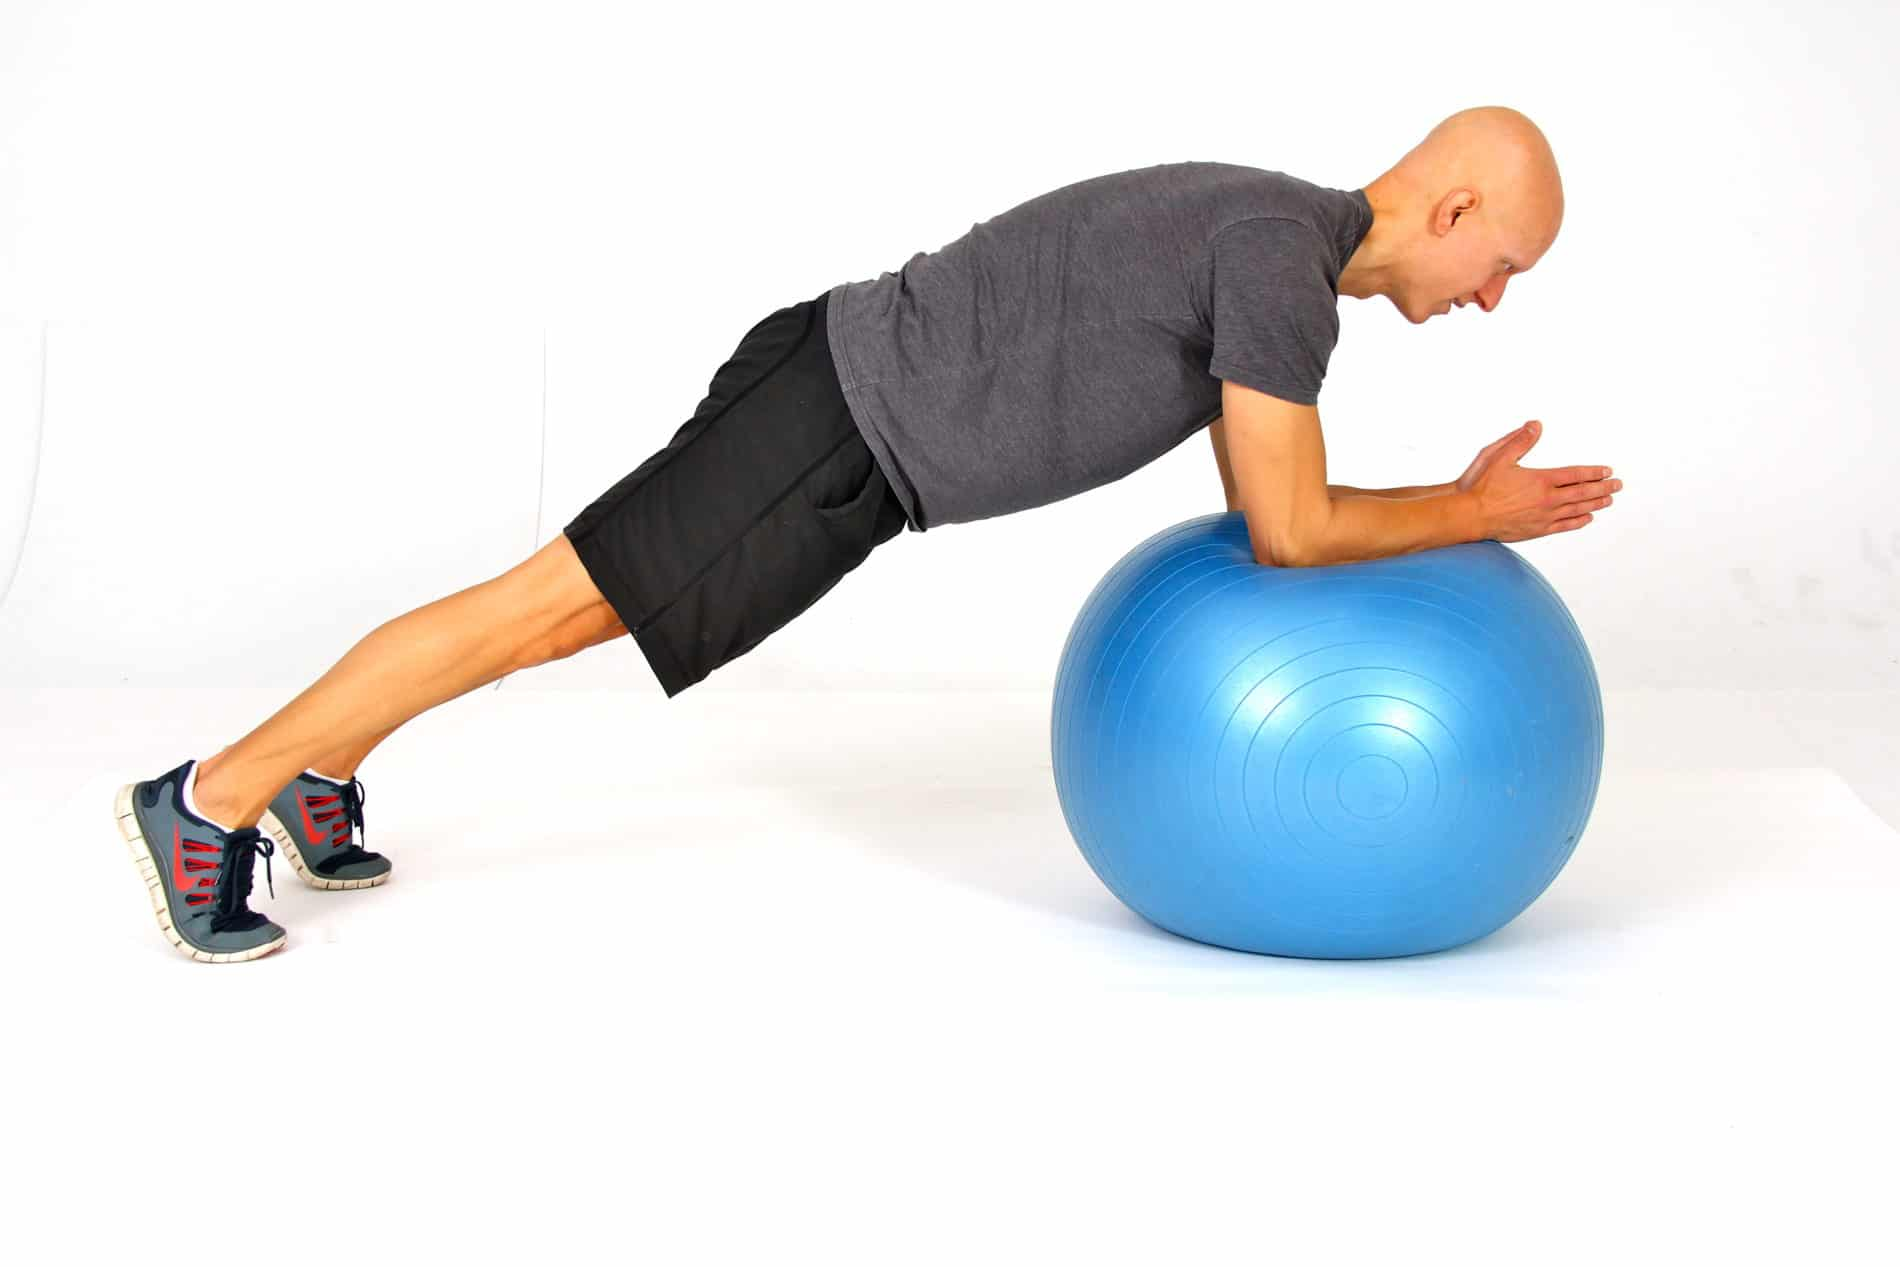 Discussion on this topic: 11 Best Stability Ball Moves, 11-best-stability-ball-moves/